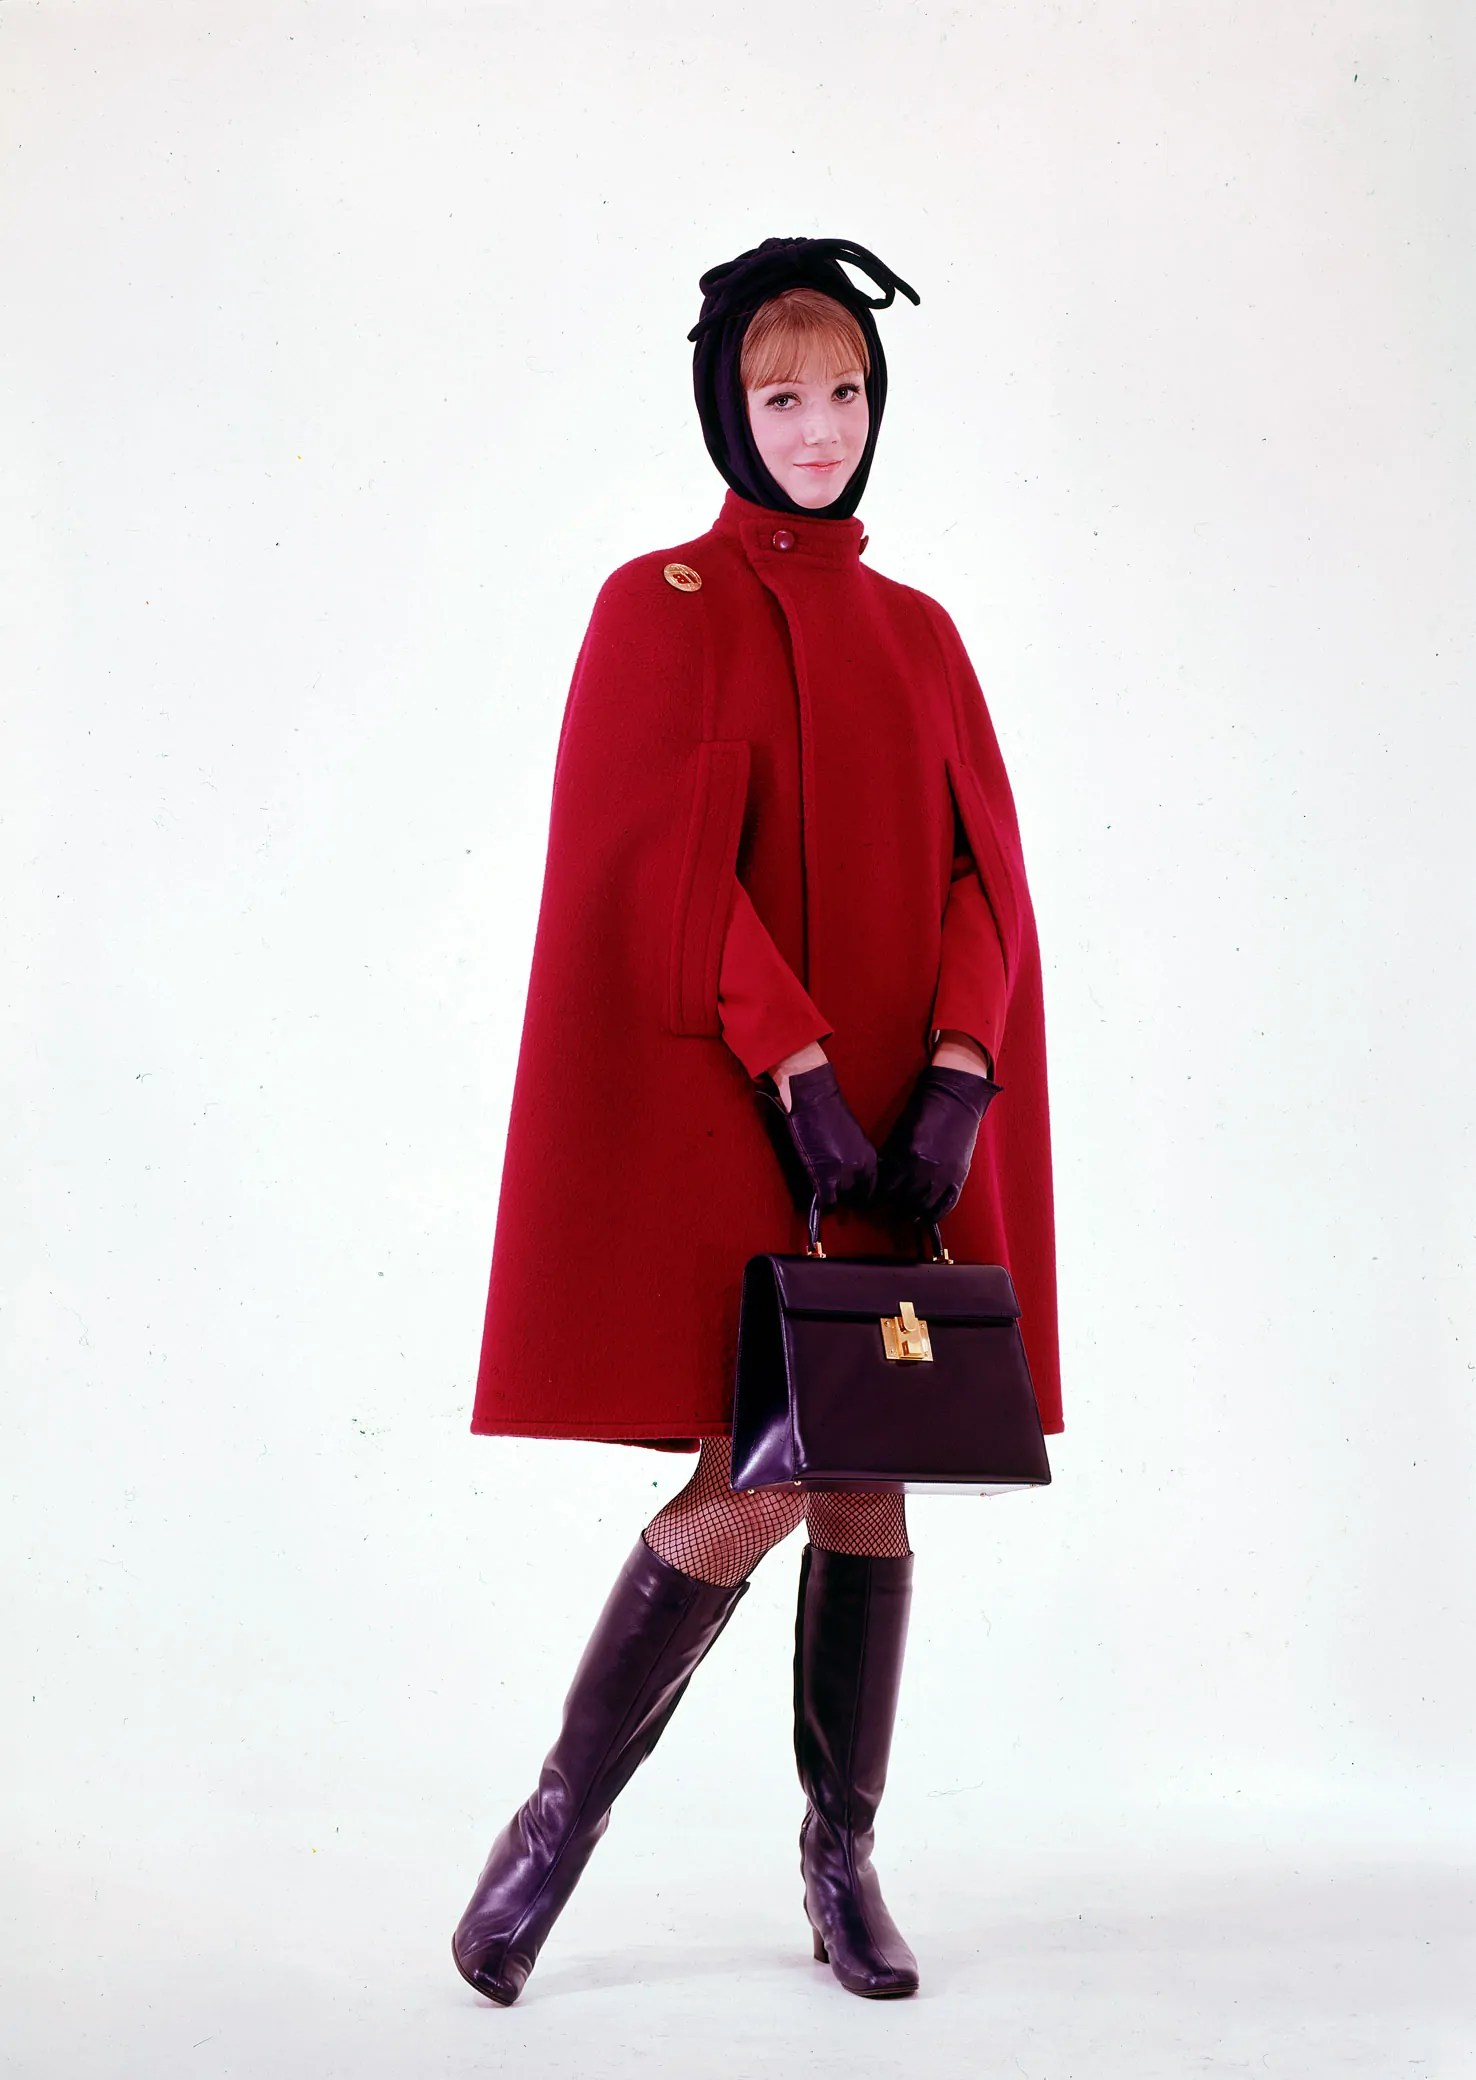 Iberia flight uniform by Manuel Pertegaz, 1968